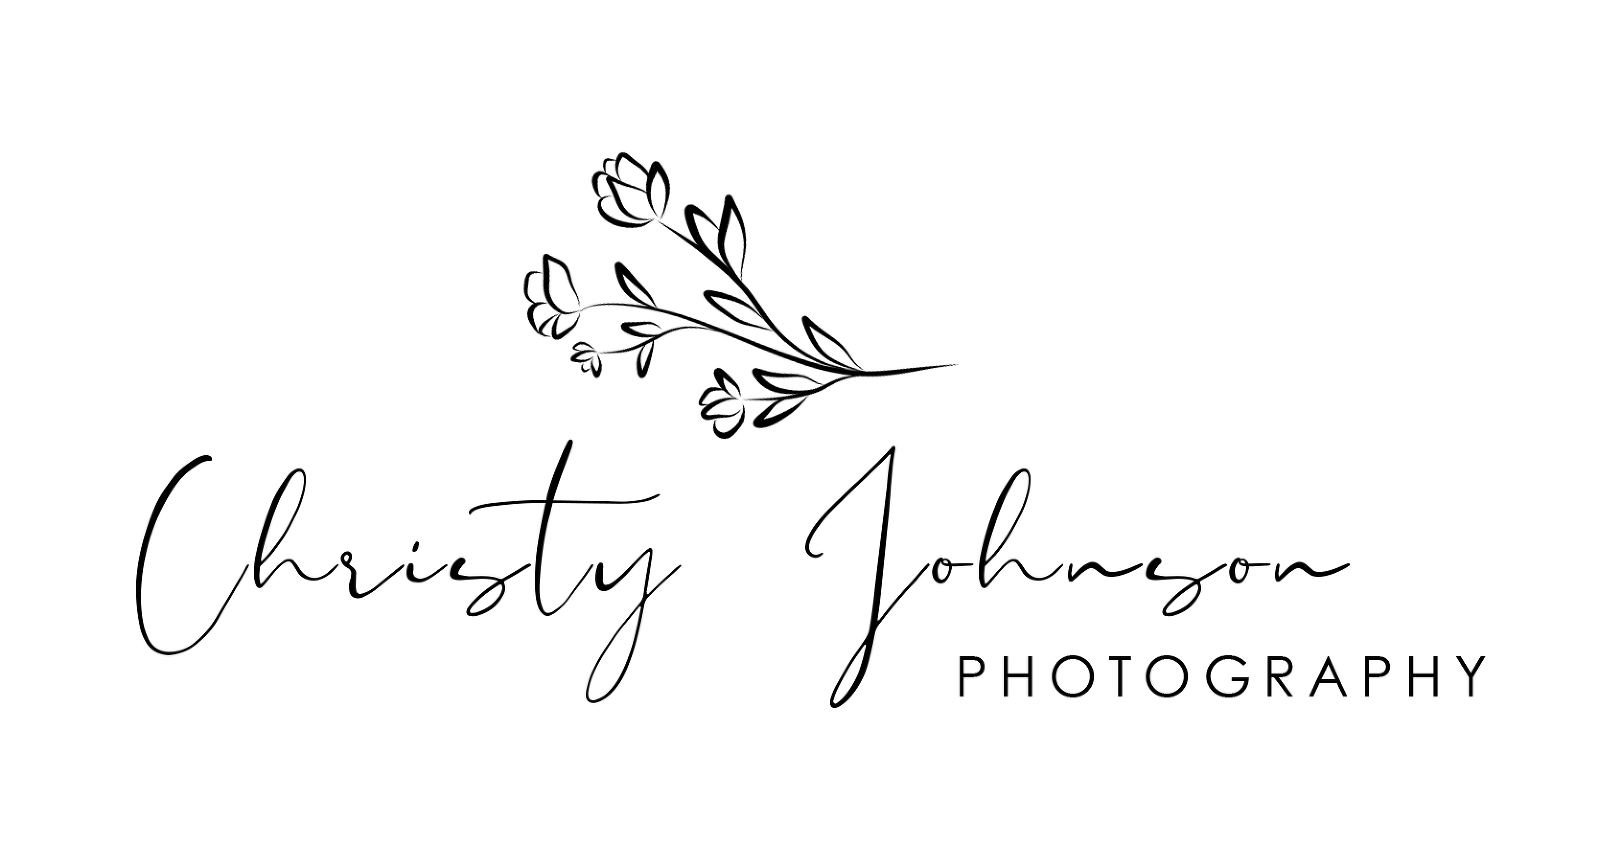 Christy Johnson Photography | Business Coach for Photographers